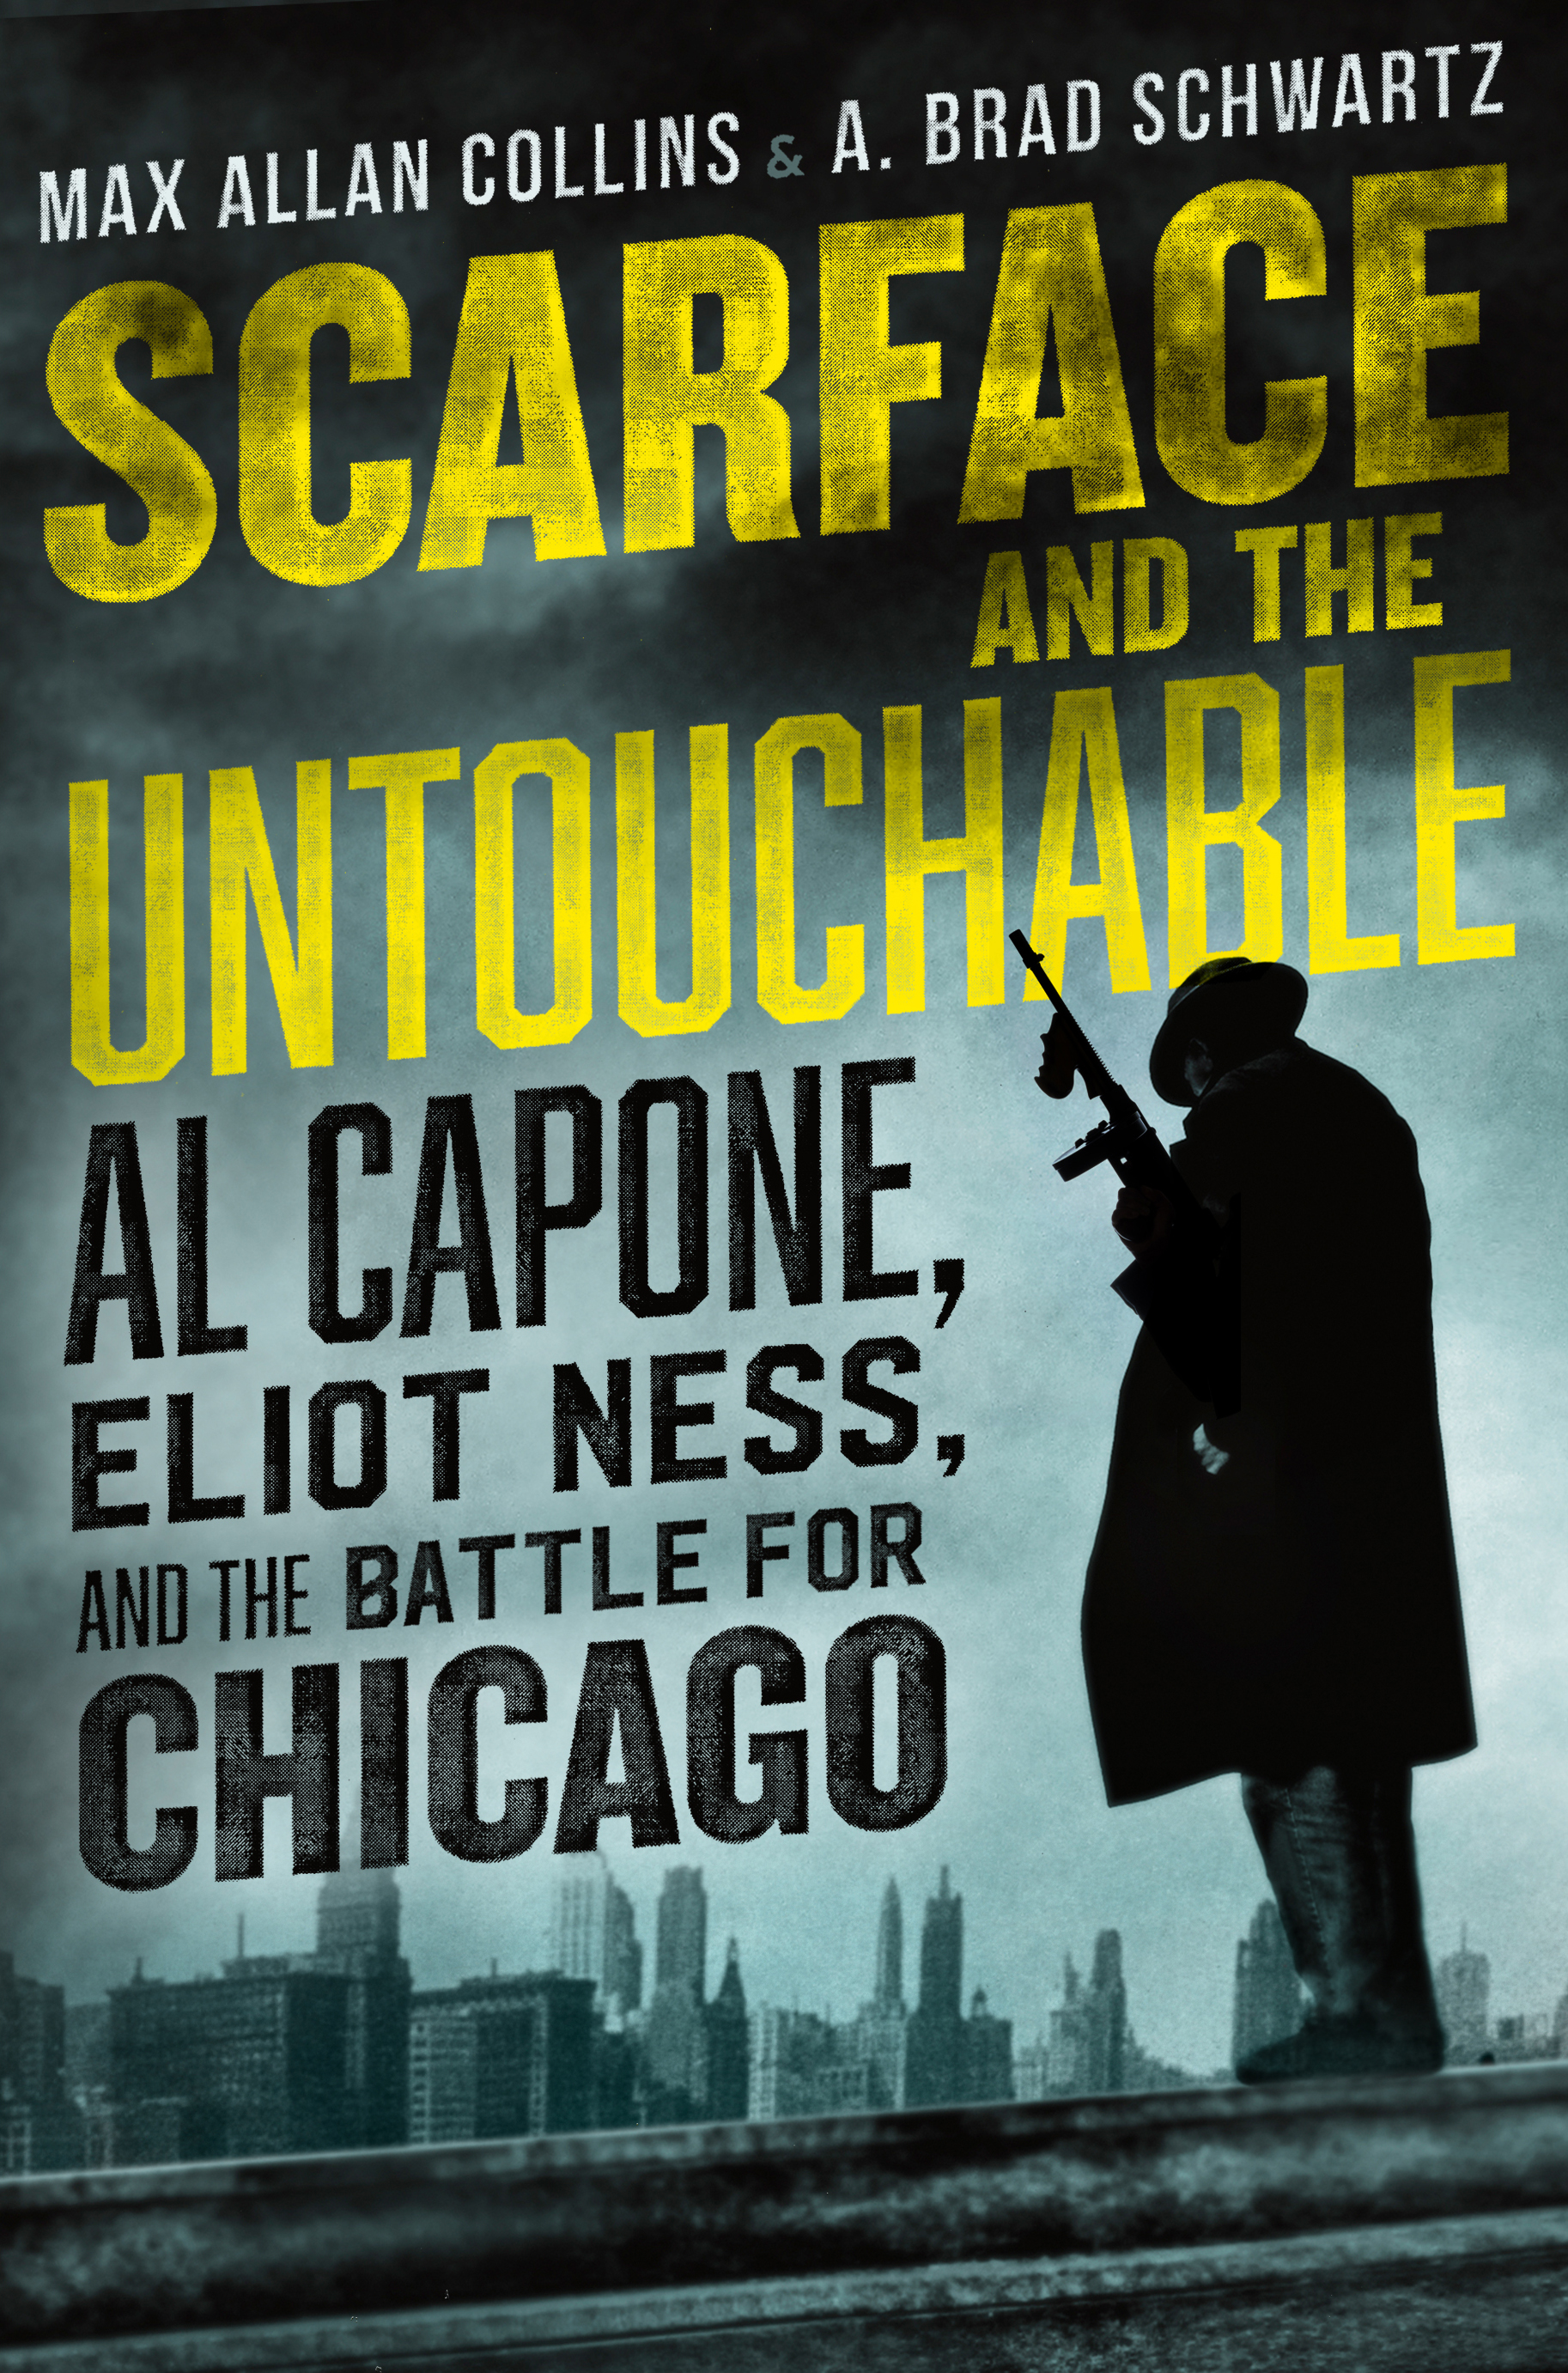 SCARFACE AND THE UNTOUCHABLE | A. Brad Schwartz